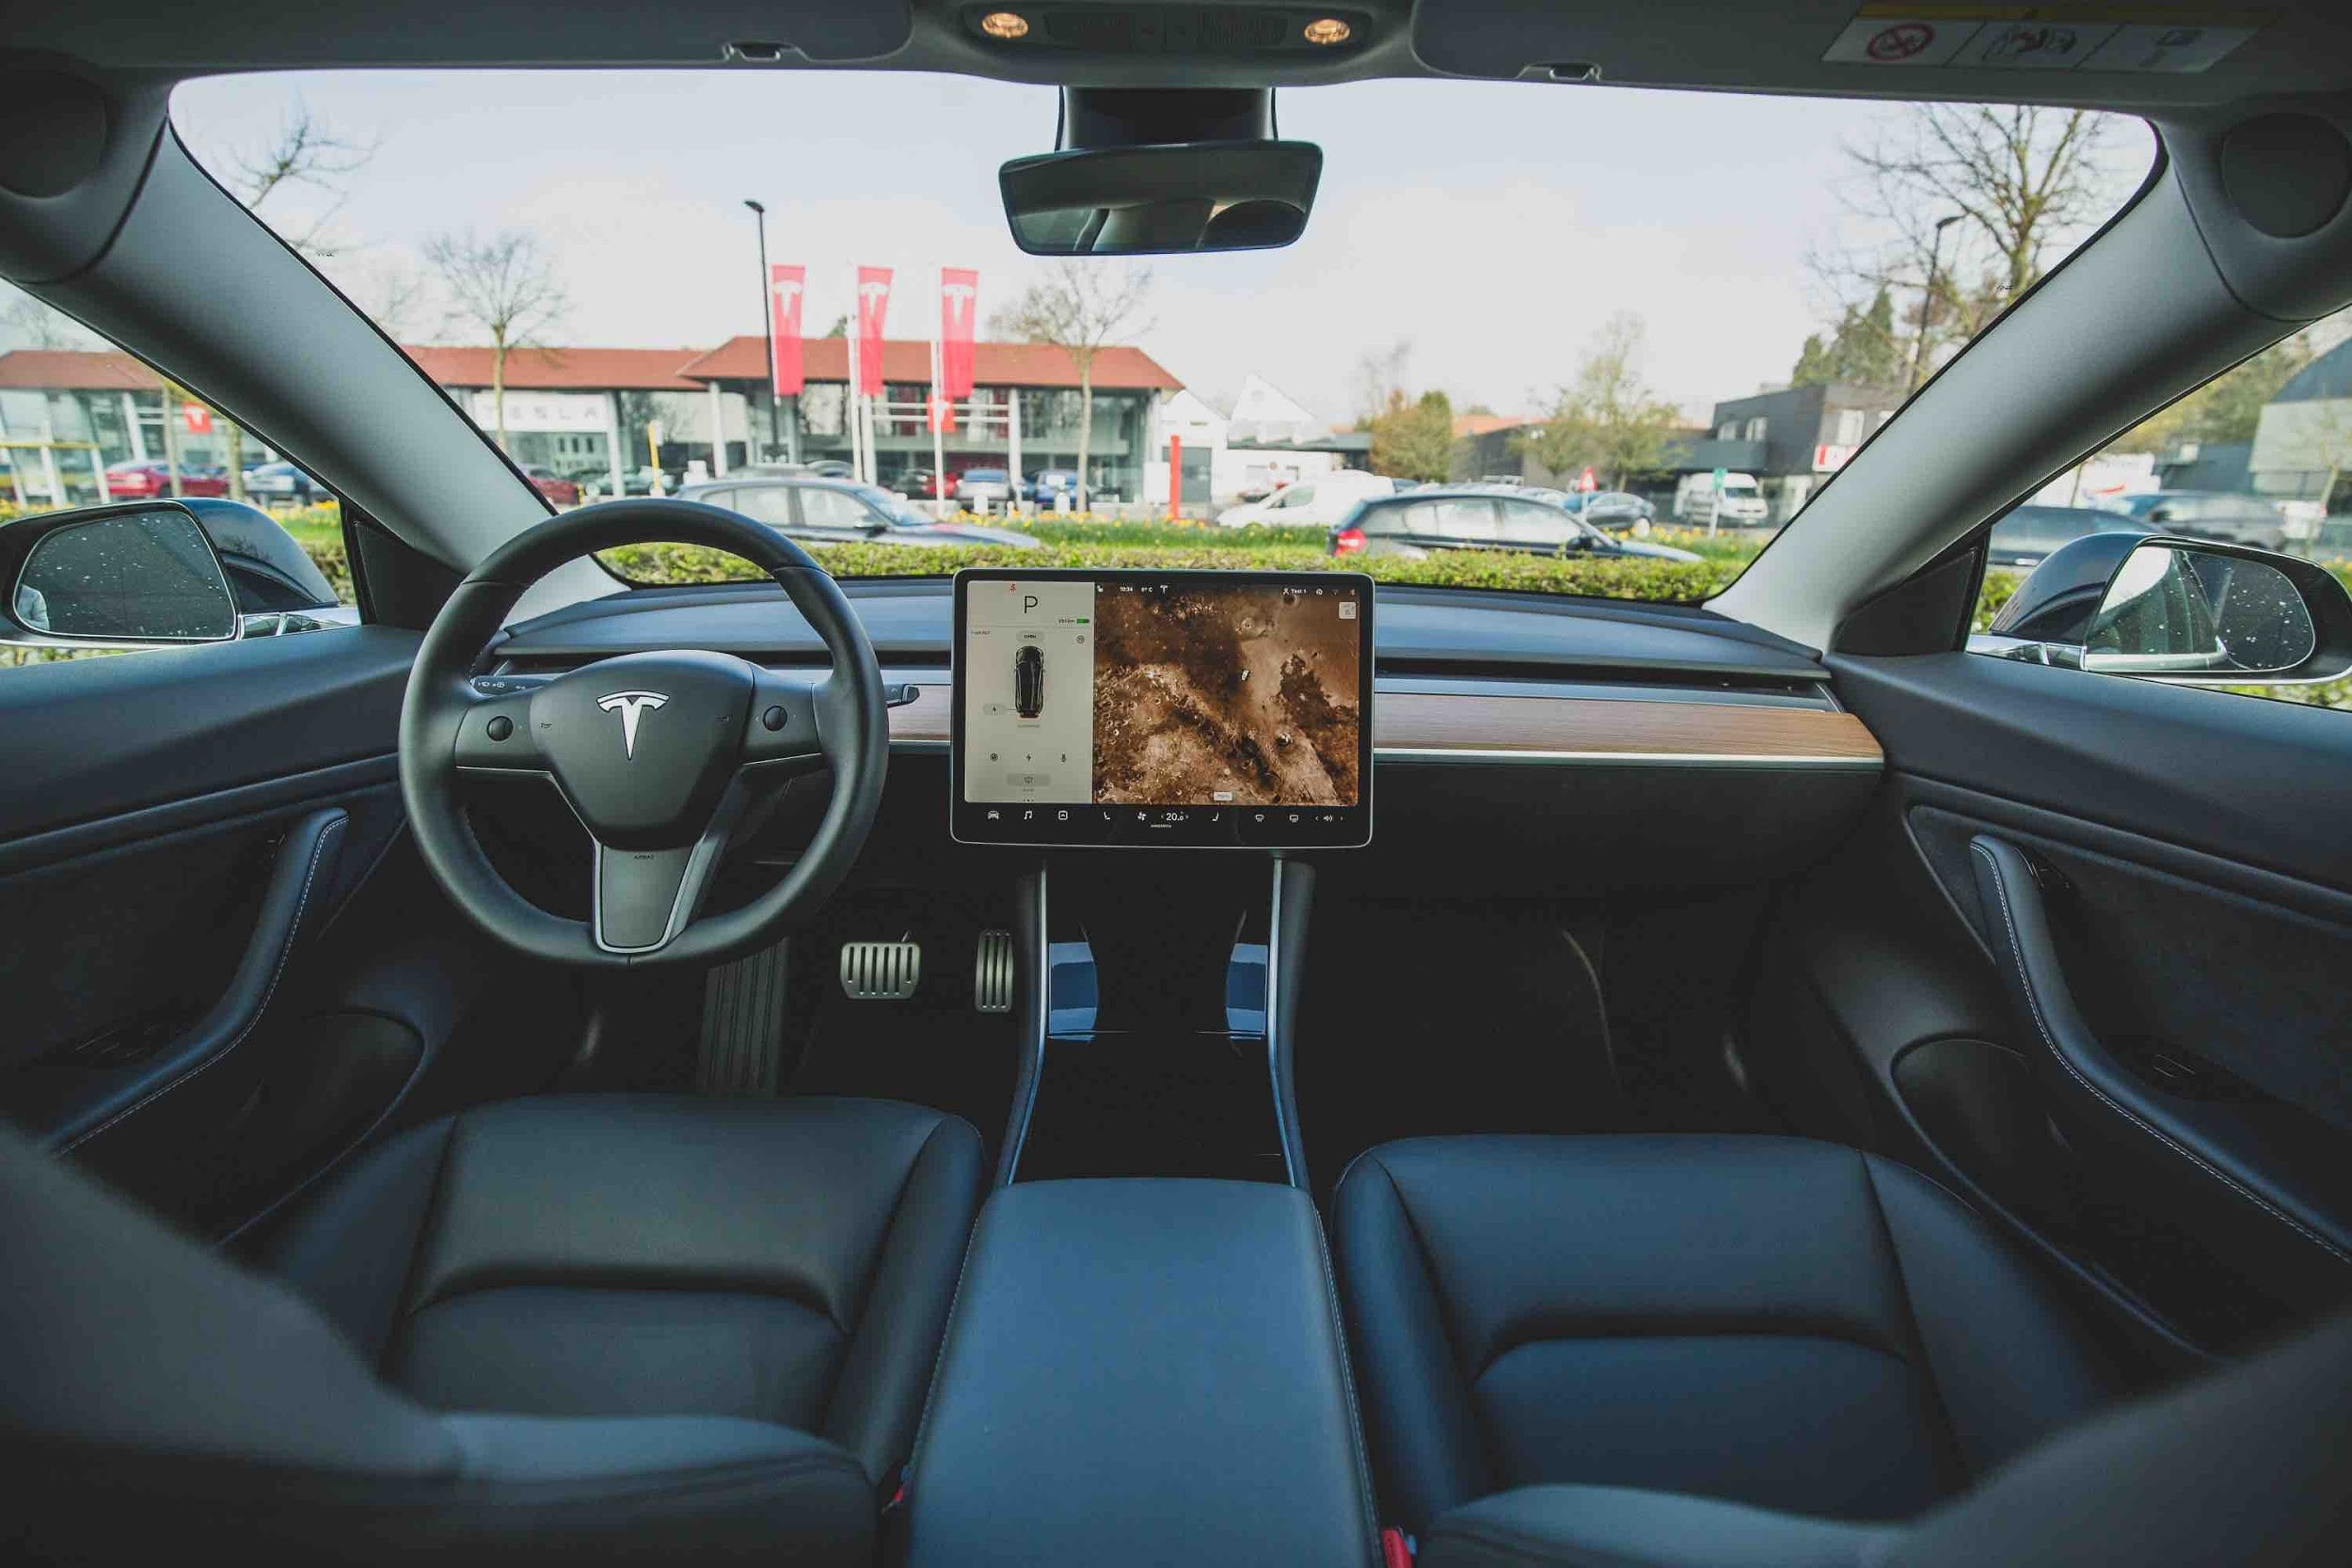 Autonomous Vehicle Technology Unlikely to Prevent All Car Crashes